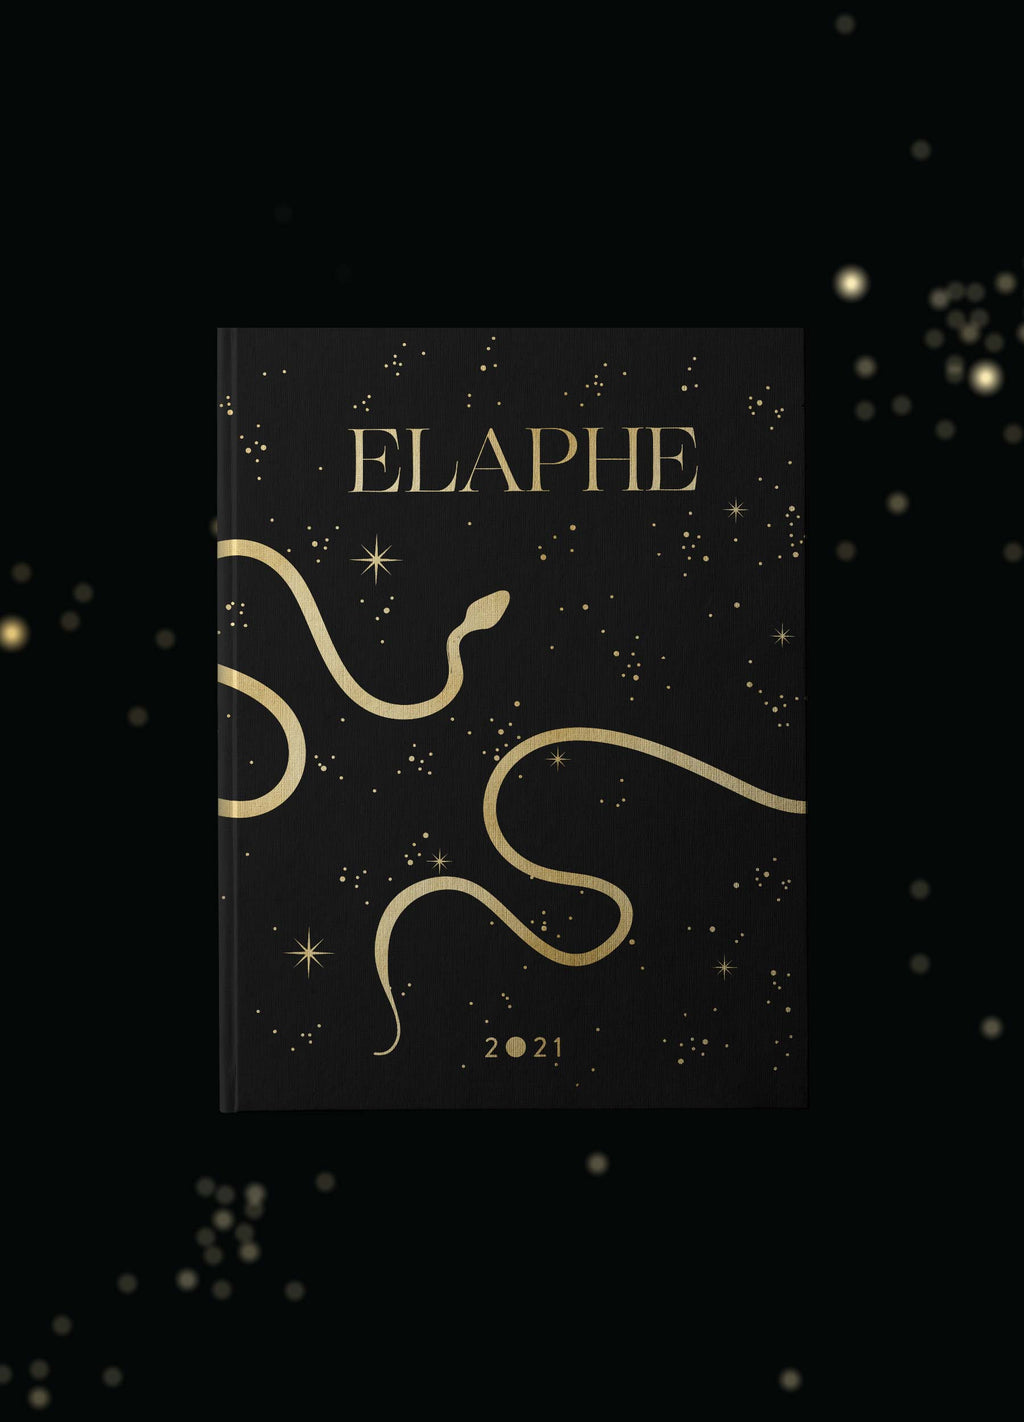 Elaphe 2021 13 Month Calendar, with astronomical, astrological and celestial events. A year of transformation, skin shedding and healing by Cocorrina & Co